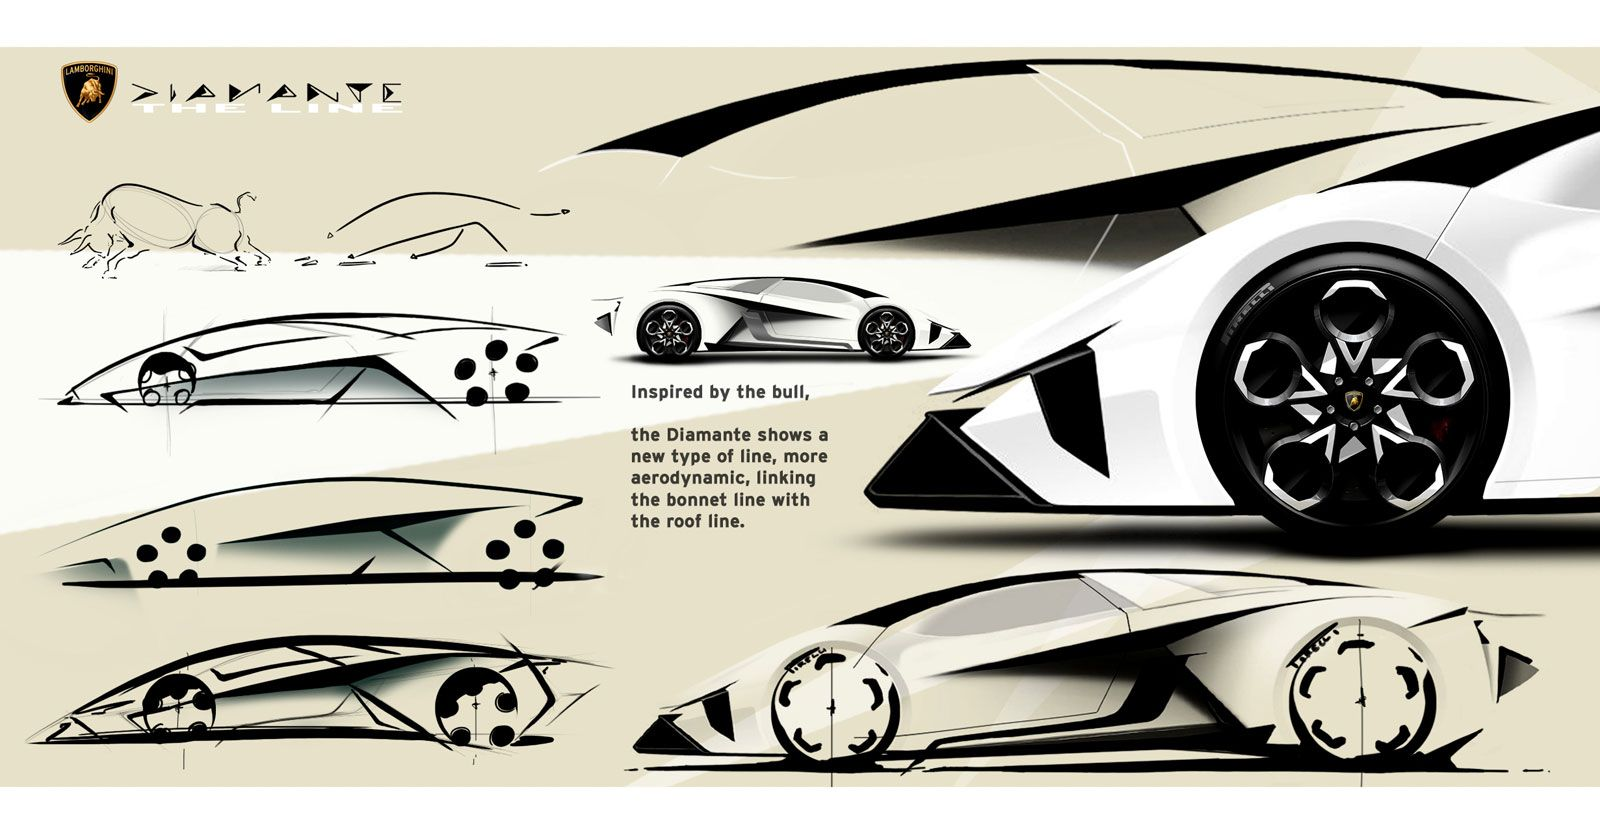 Lamborghini Diamante Concept Design Sketches Sketch Car Design